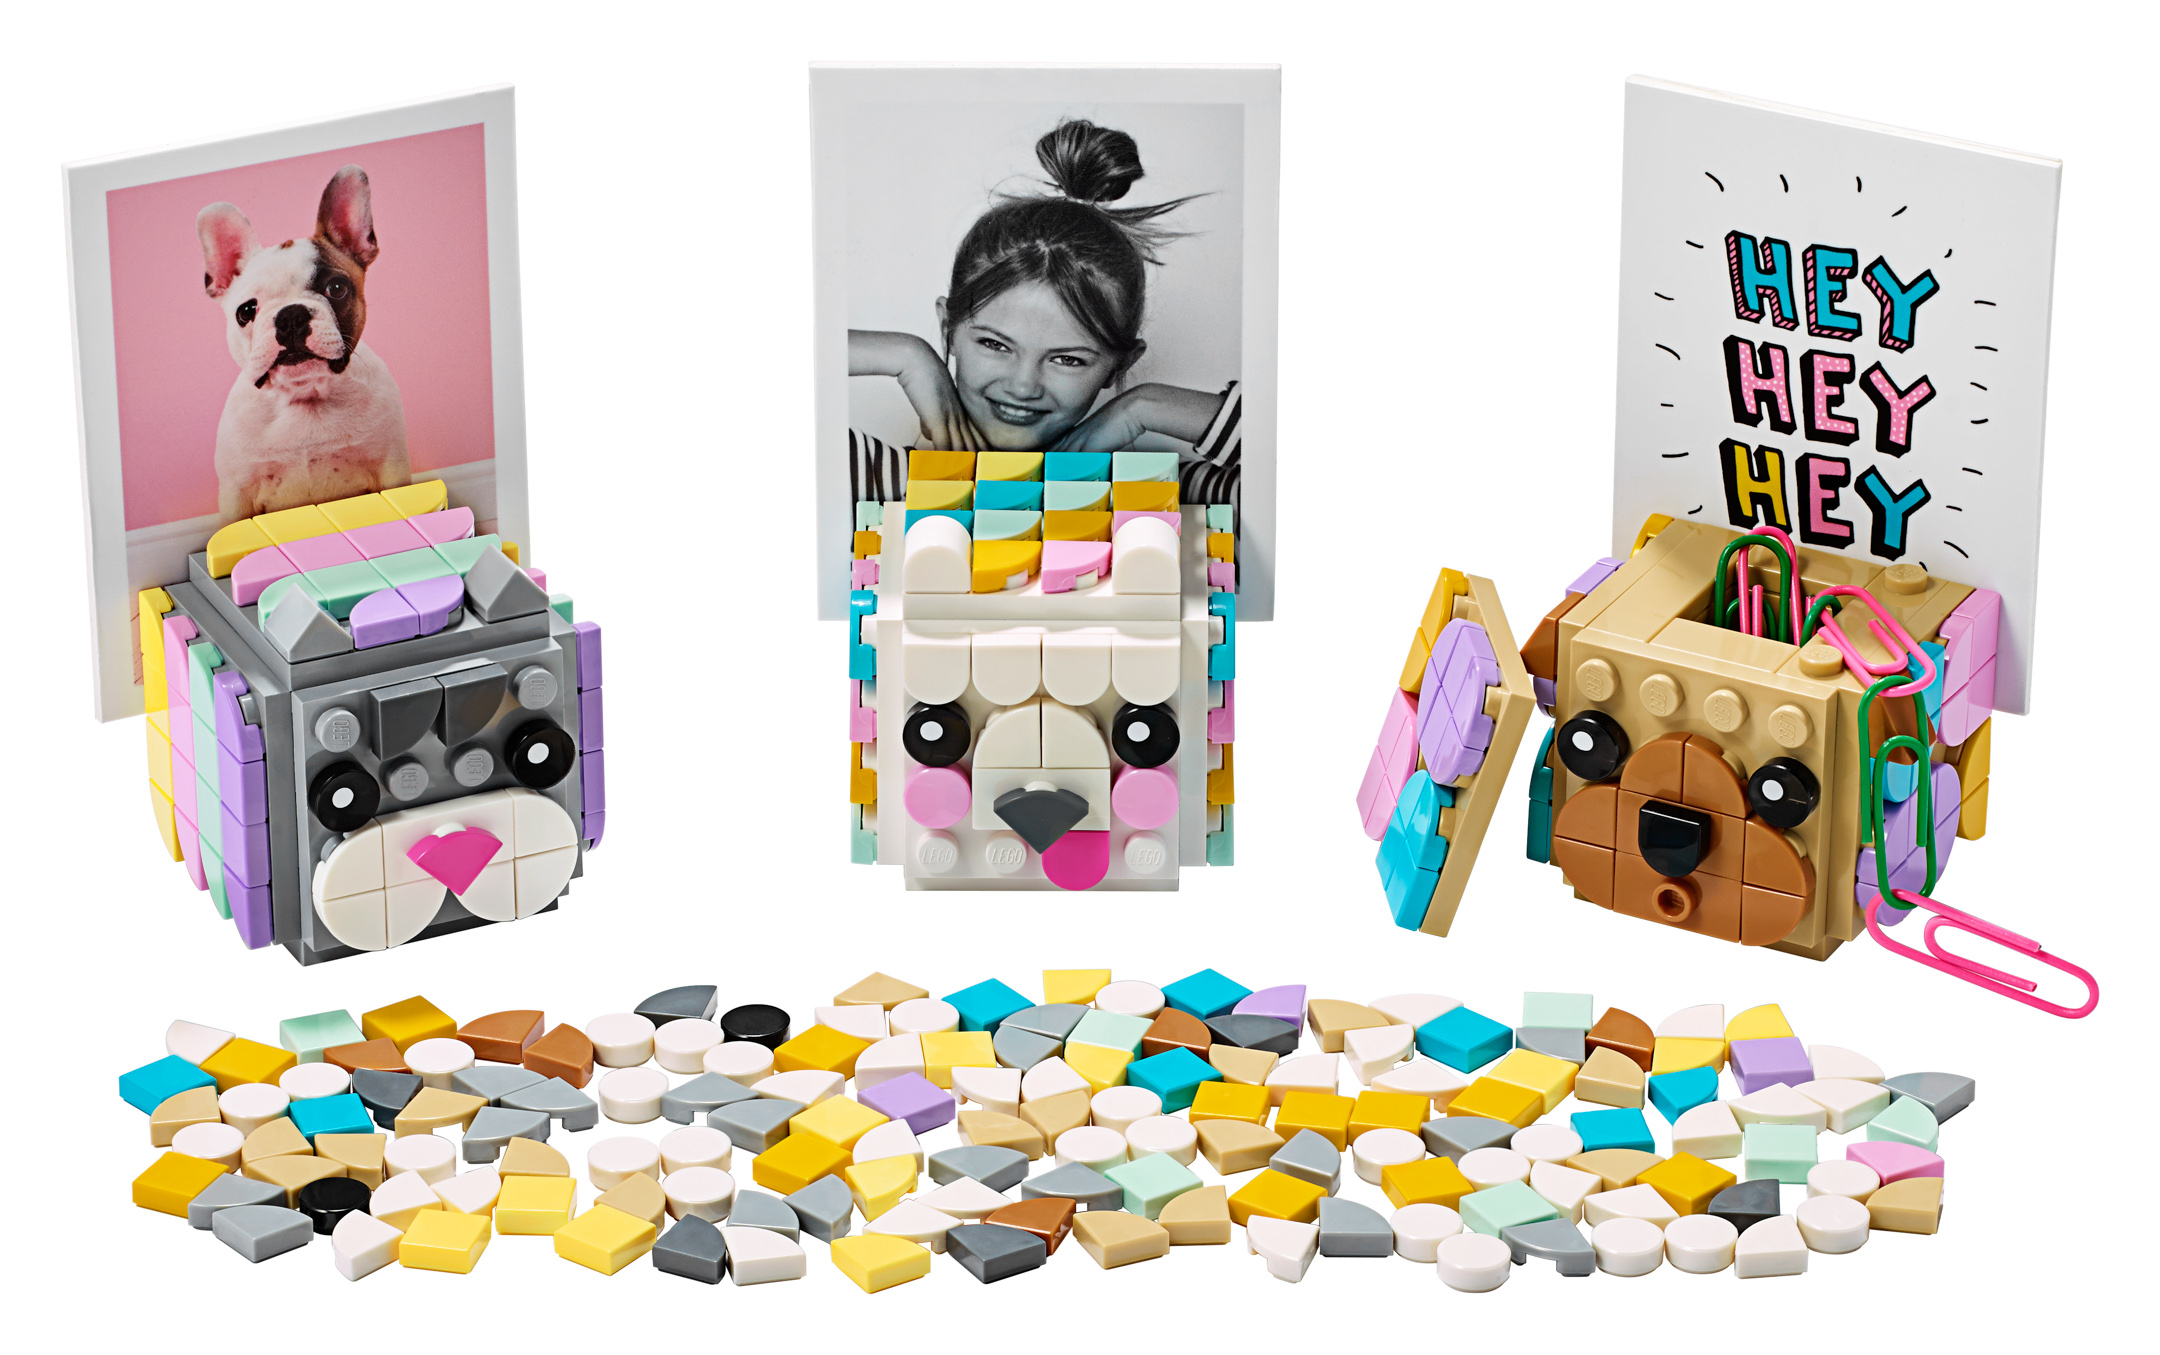 LEGO DOTS is making its U.S. debut at New York Toy Fair 2020 15